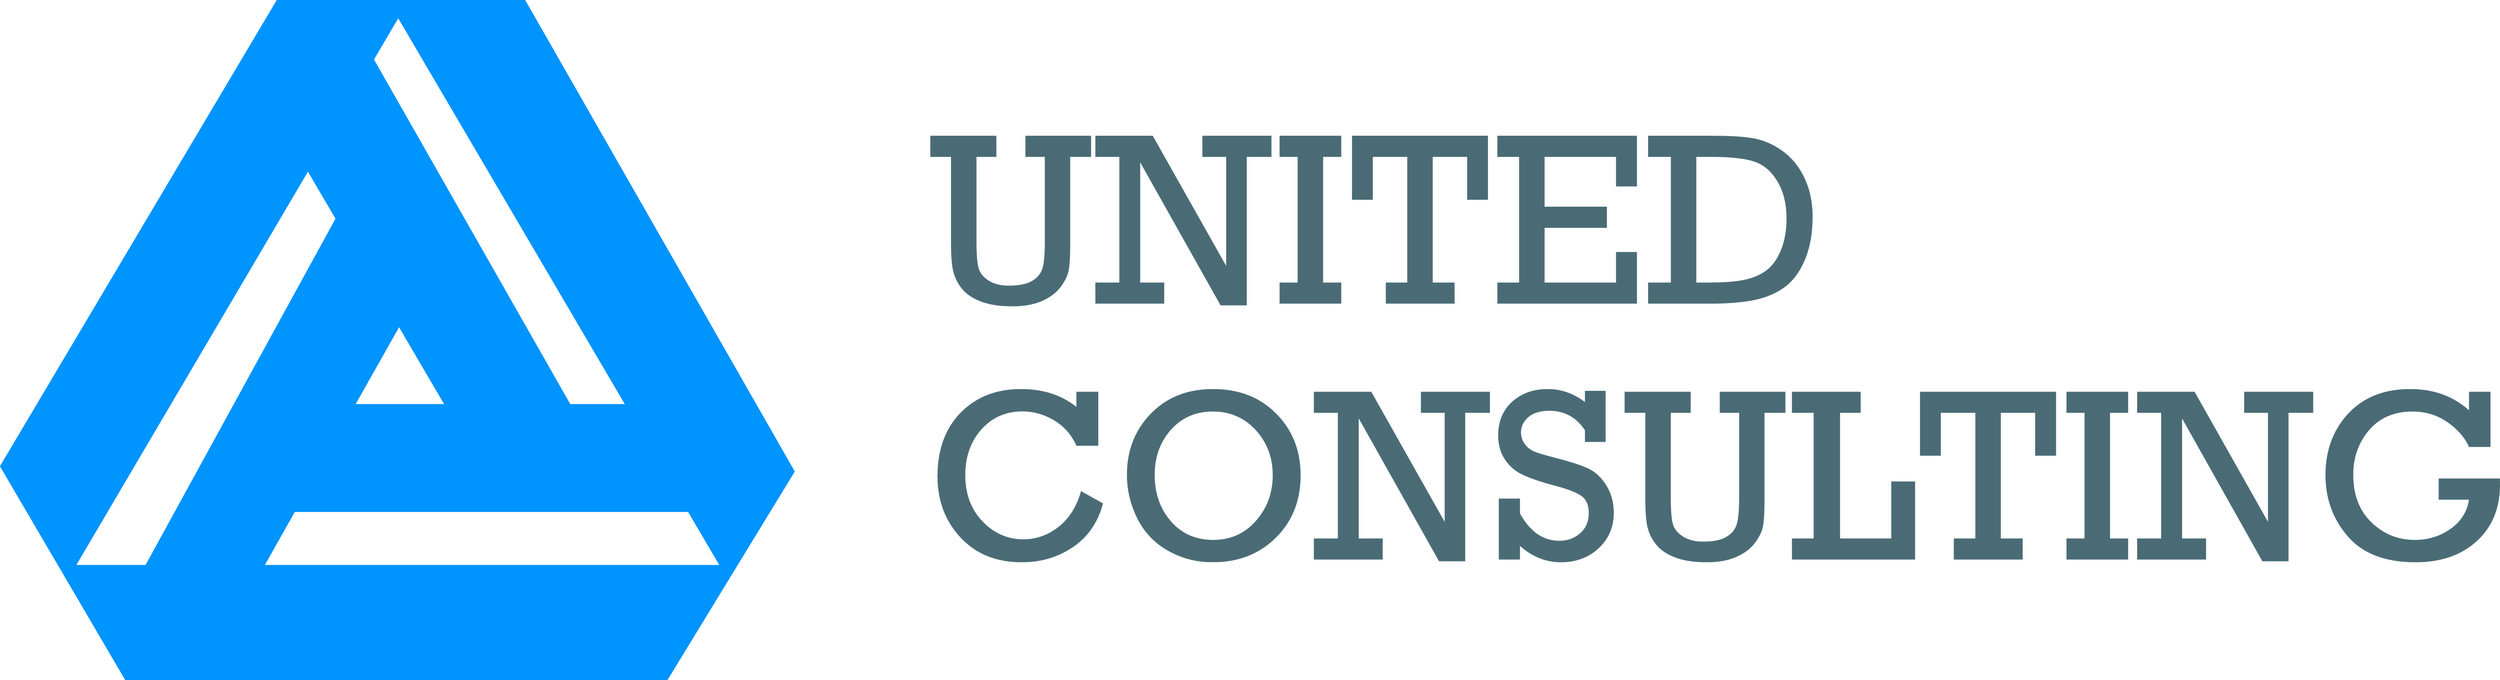 United Consulting Logo 2016.jpg